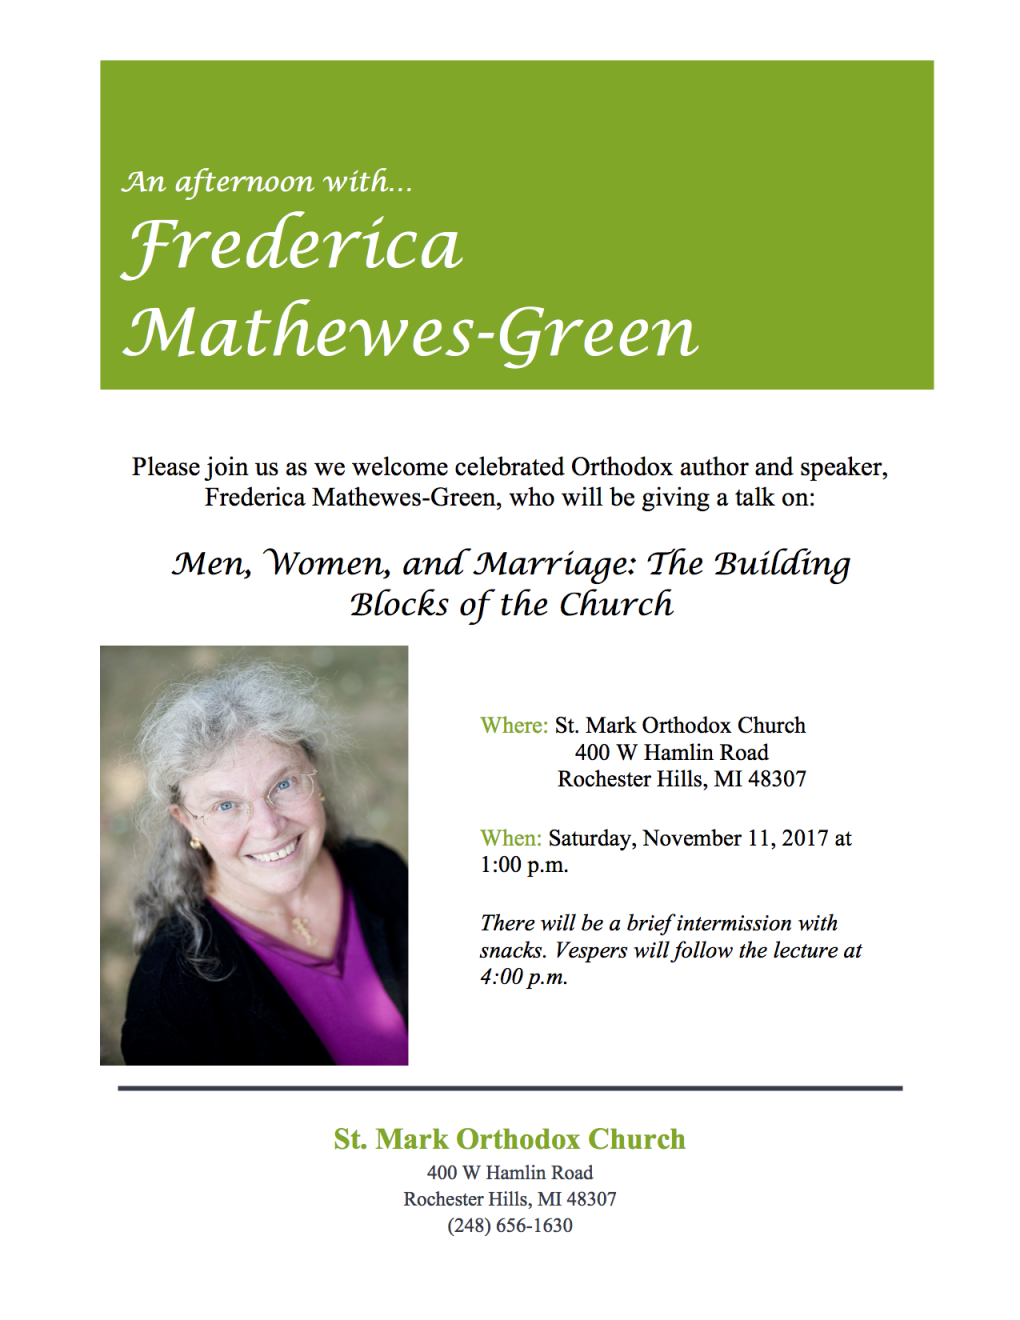 Frederica Mathews-Green